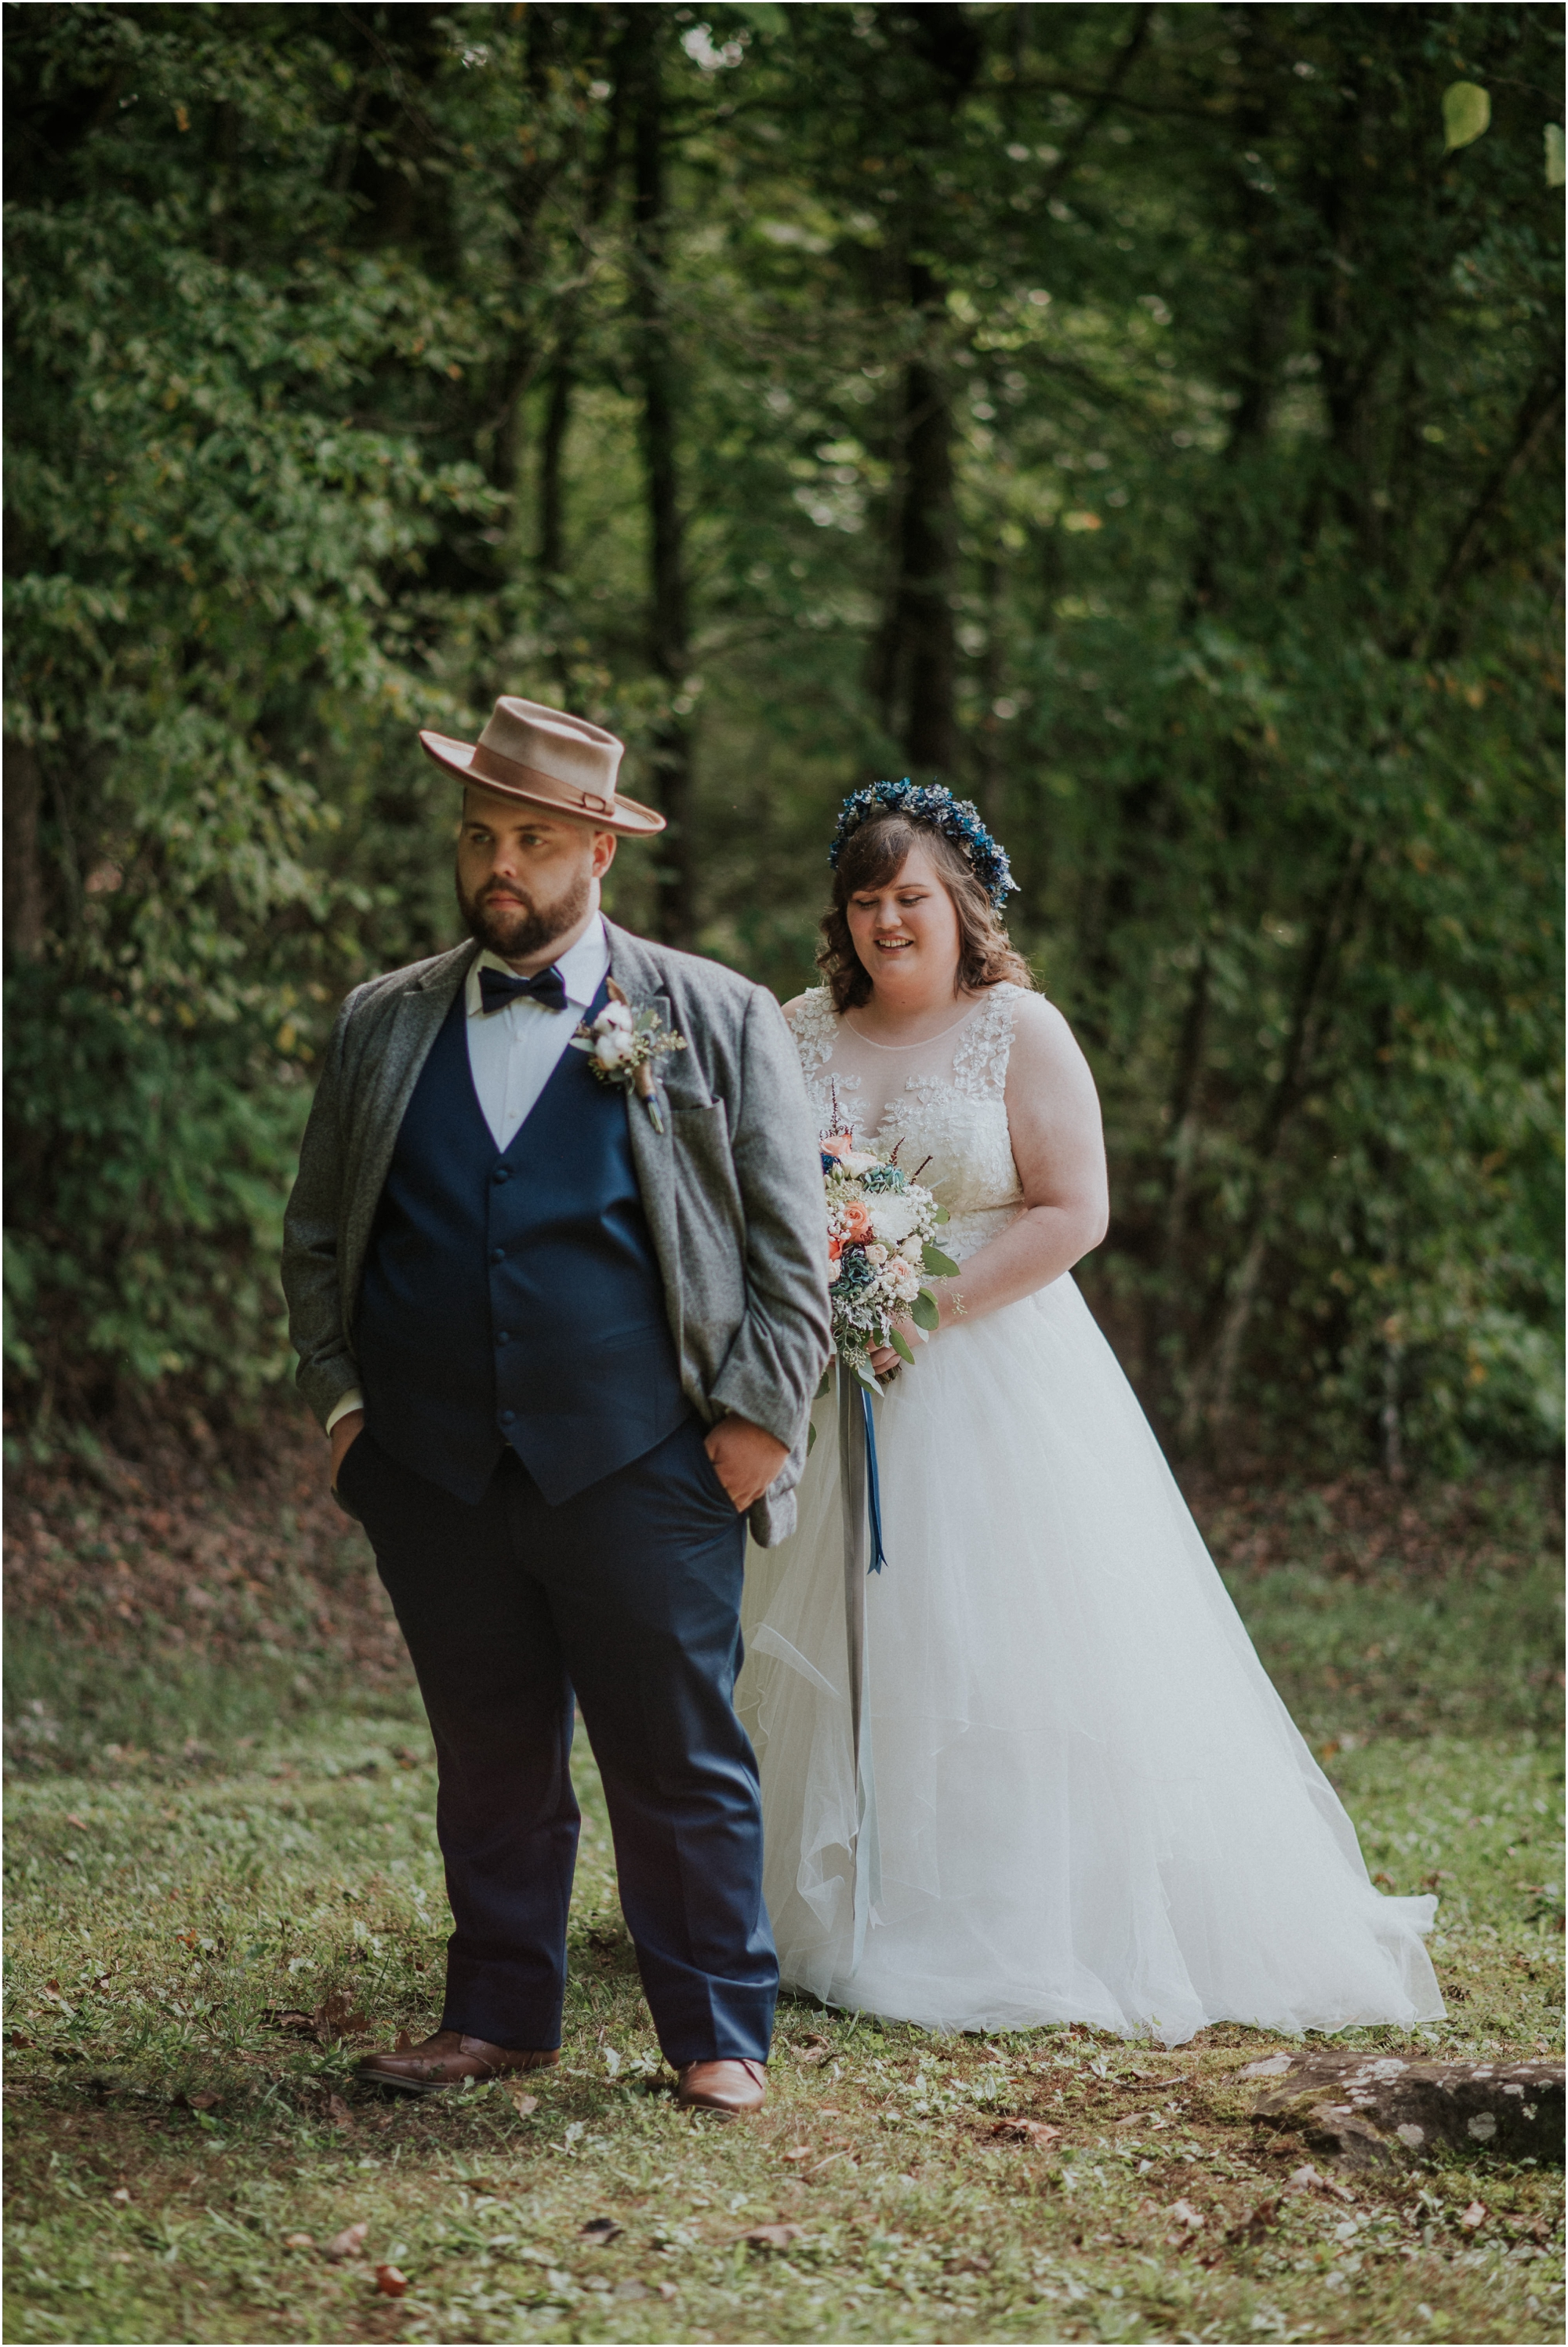 first-looks-wedding-planning-tips-timeline-groom-bride-katy-sergent-photography-northeast-tennessee-adventurous-wedding-elopement_0002.jpg